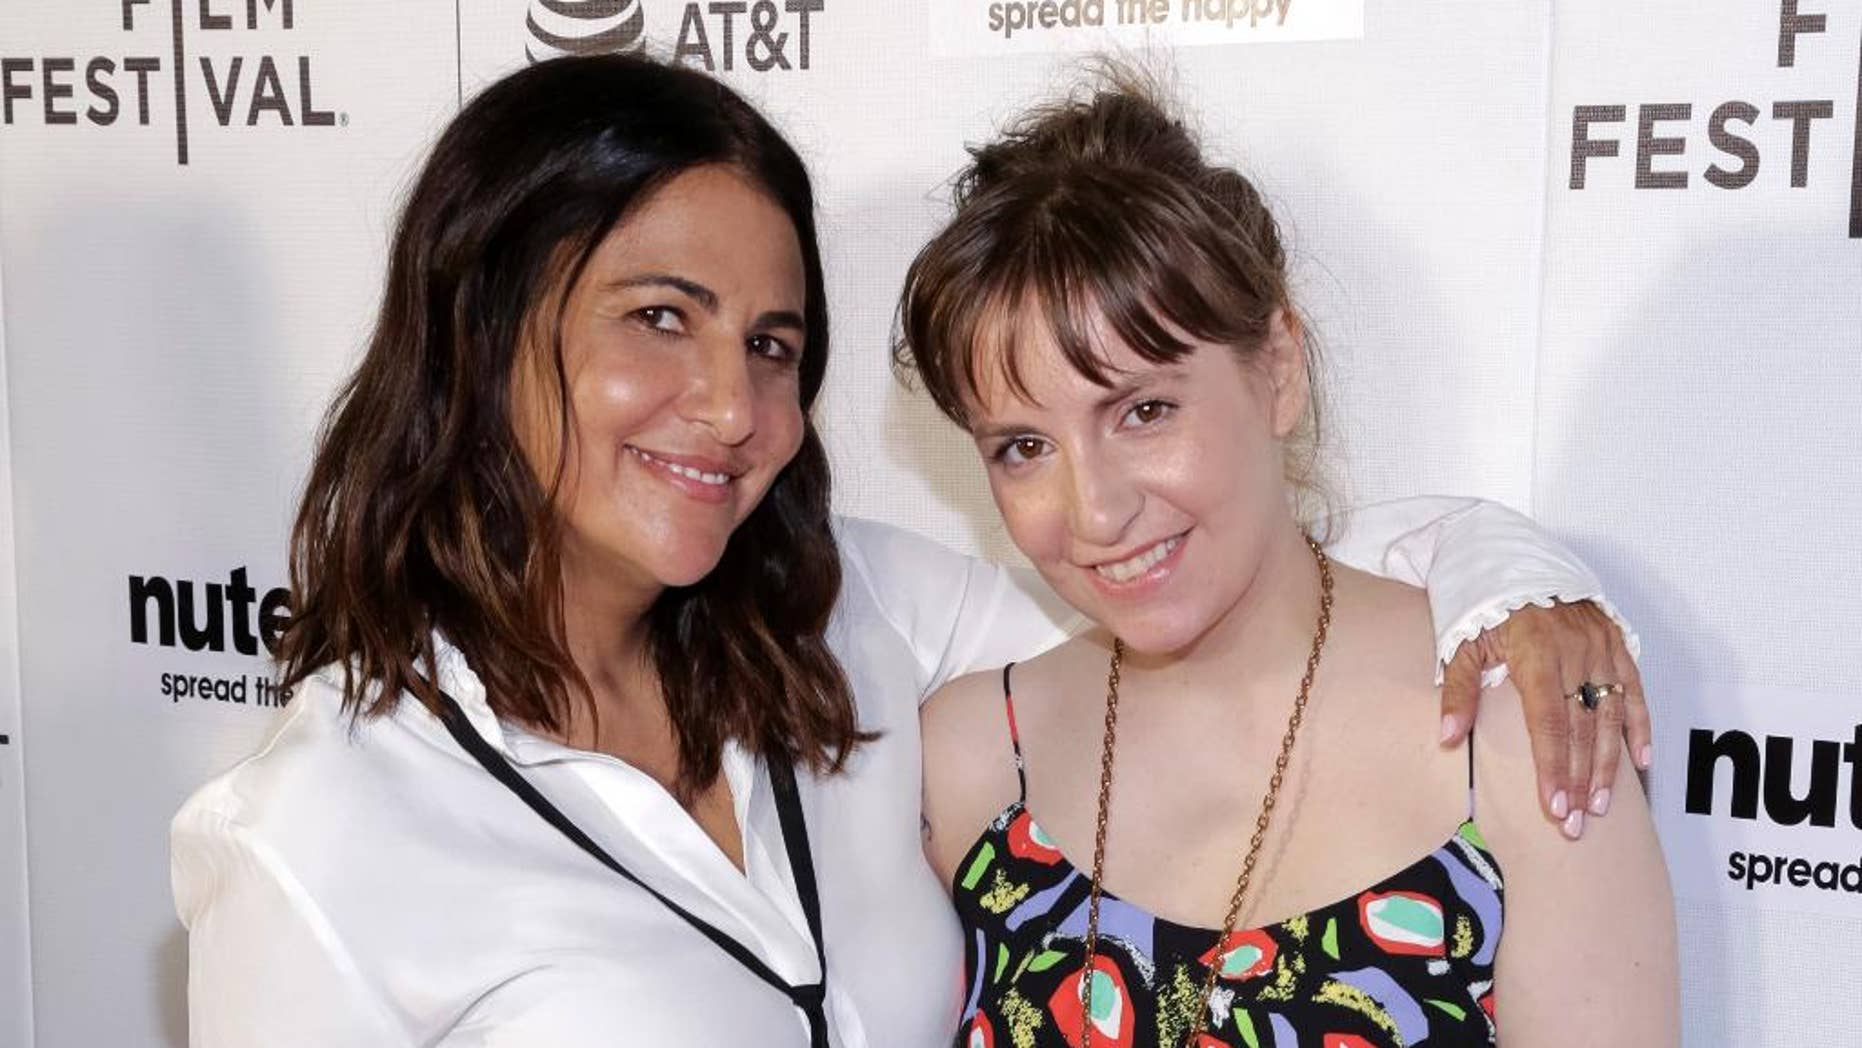 "FILE - In this April 22, 2017, file photo, producers Jenni Konner, left, and Lena Dunham attend a screening of ""Tokyo Project"" during the 2017 Tribeca Film Festival in New York. Now that HBO's ""Girls"" has wrapped its six-year run, the women behind the series are focusing on their other female-centered project: turning their biweekly digital newsletter, Lenny, into a real-life experience. Dunham and Konner announced a six-city tour Tuesday, April 25 that will bring LennyLetter.com to life as a variety show. (Photo by Brent N. Clarke/Invision/AP, File)"